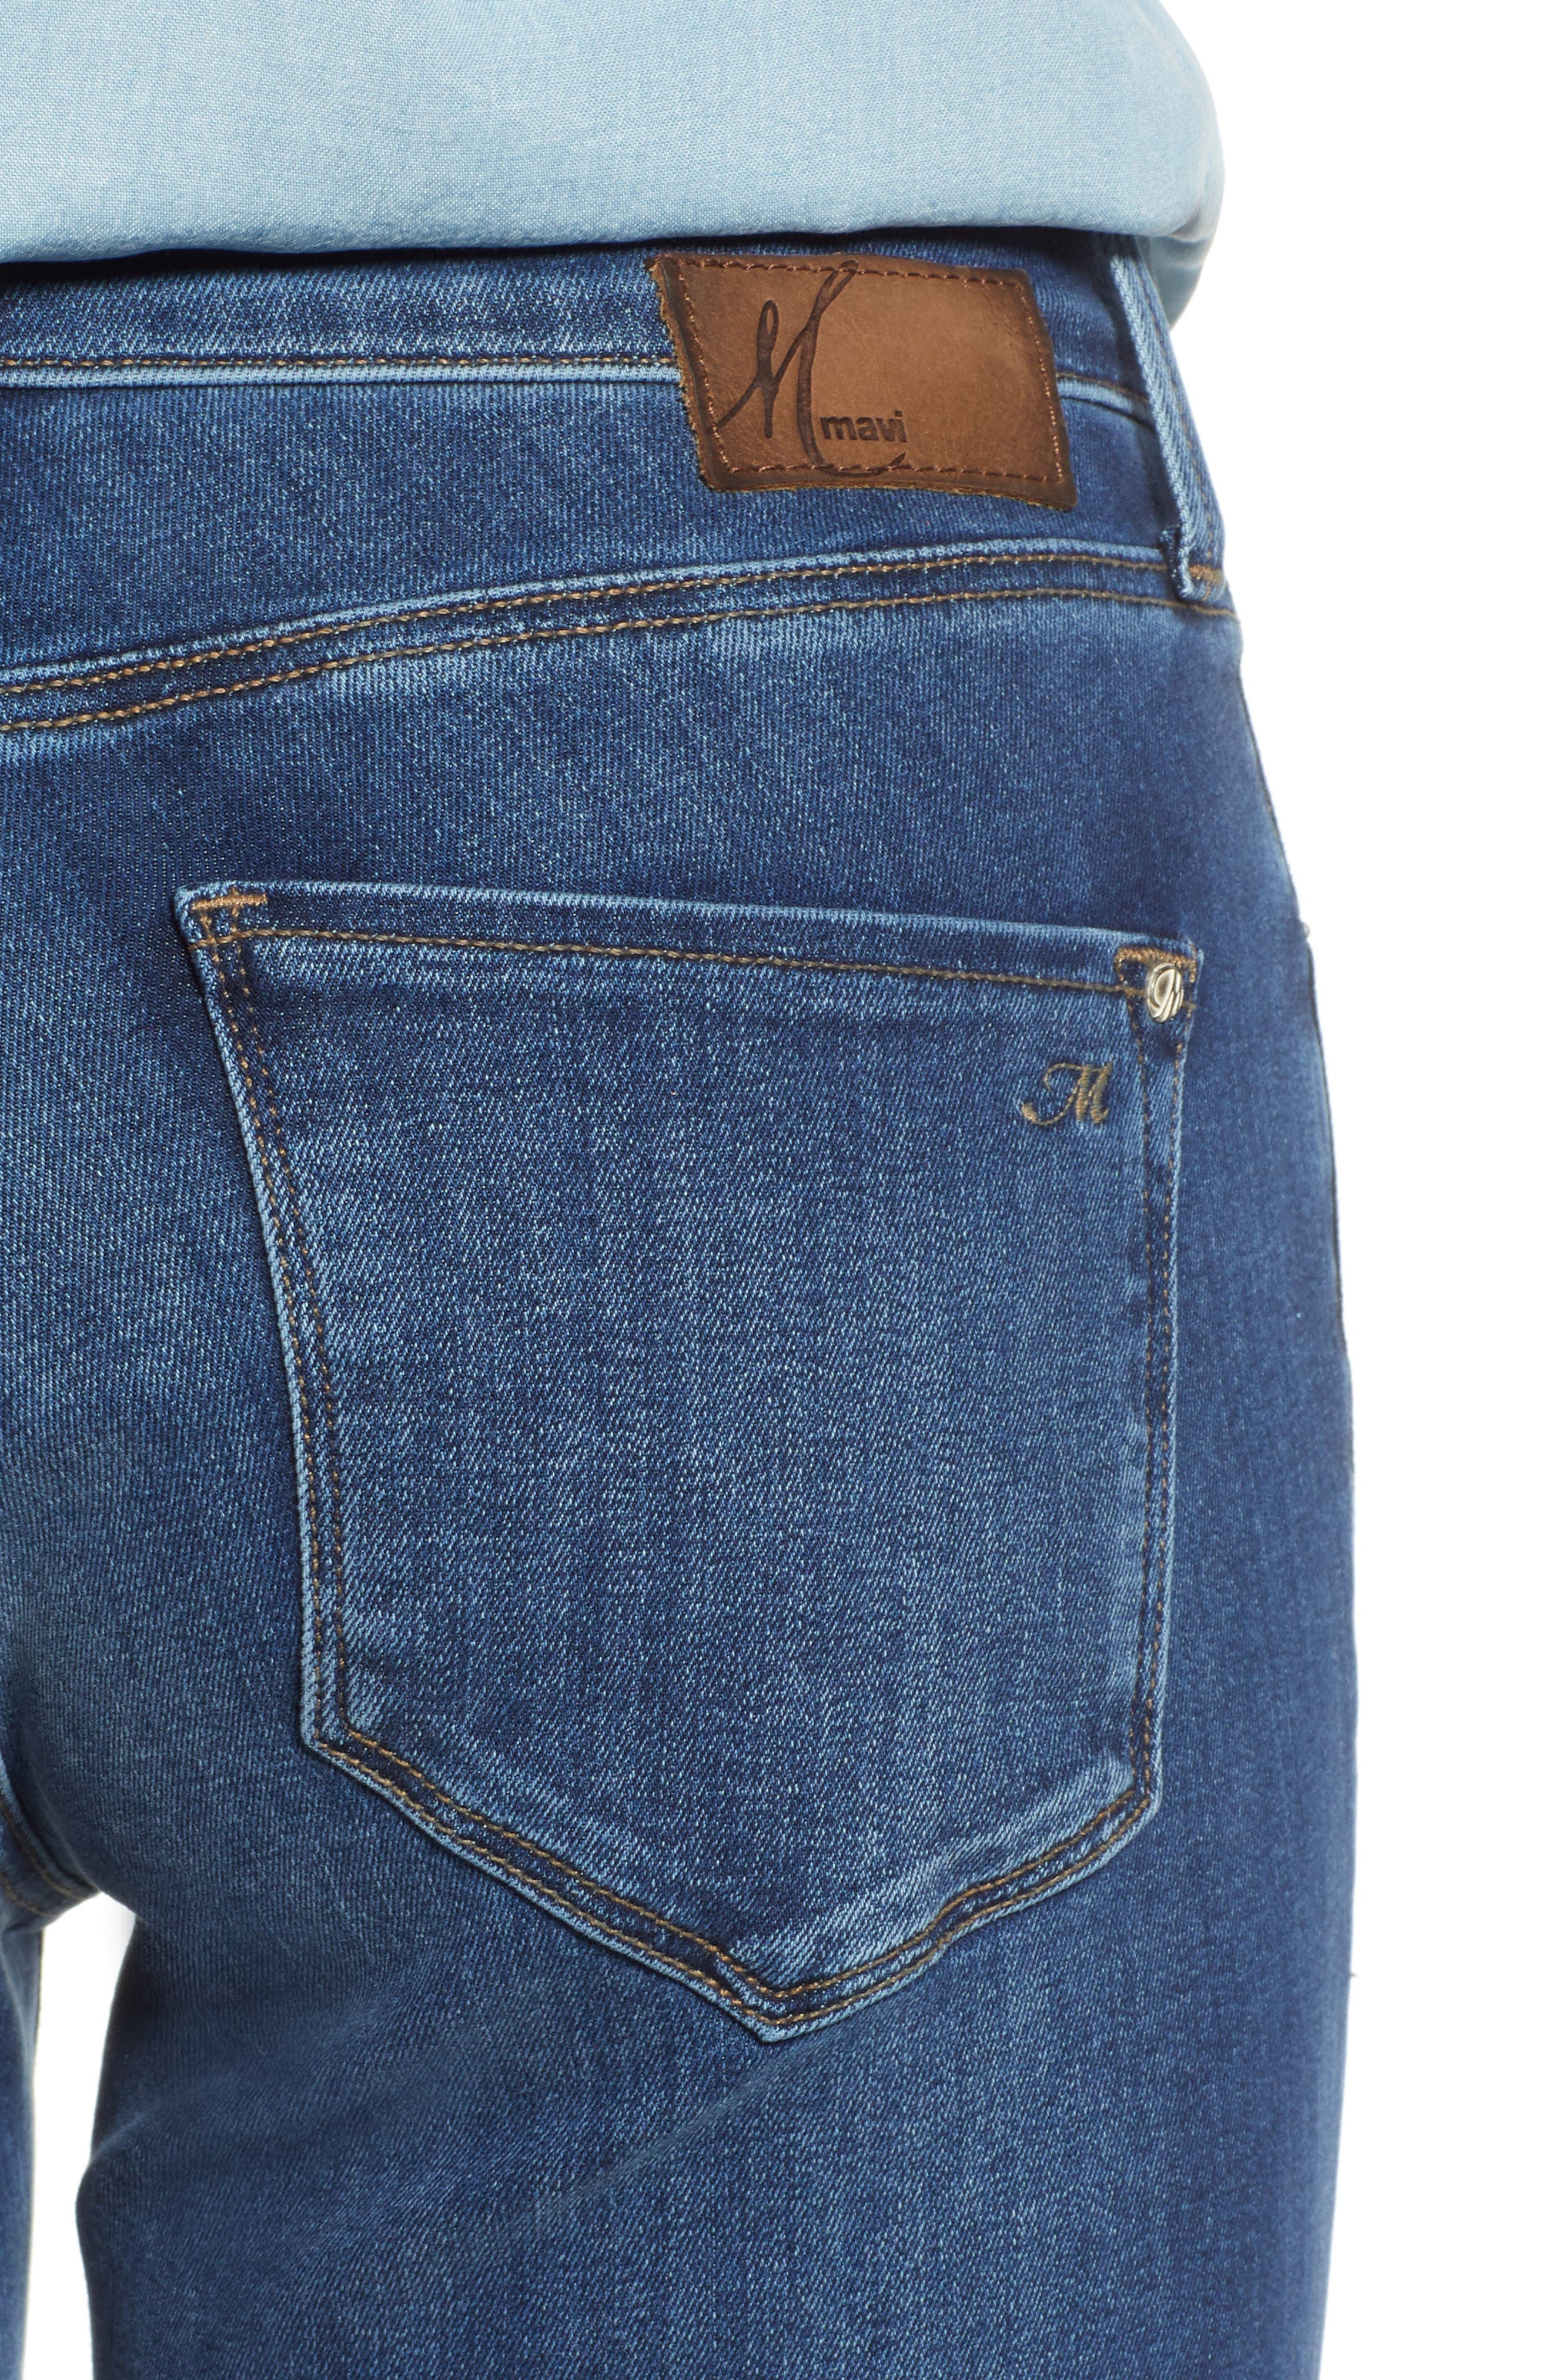 Molly Classic Bootcut Jeans,                             Alternate thumbnail 4, color,                             INDIGO SUPERSOFT